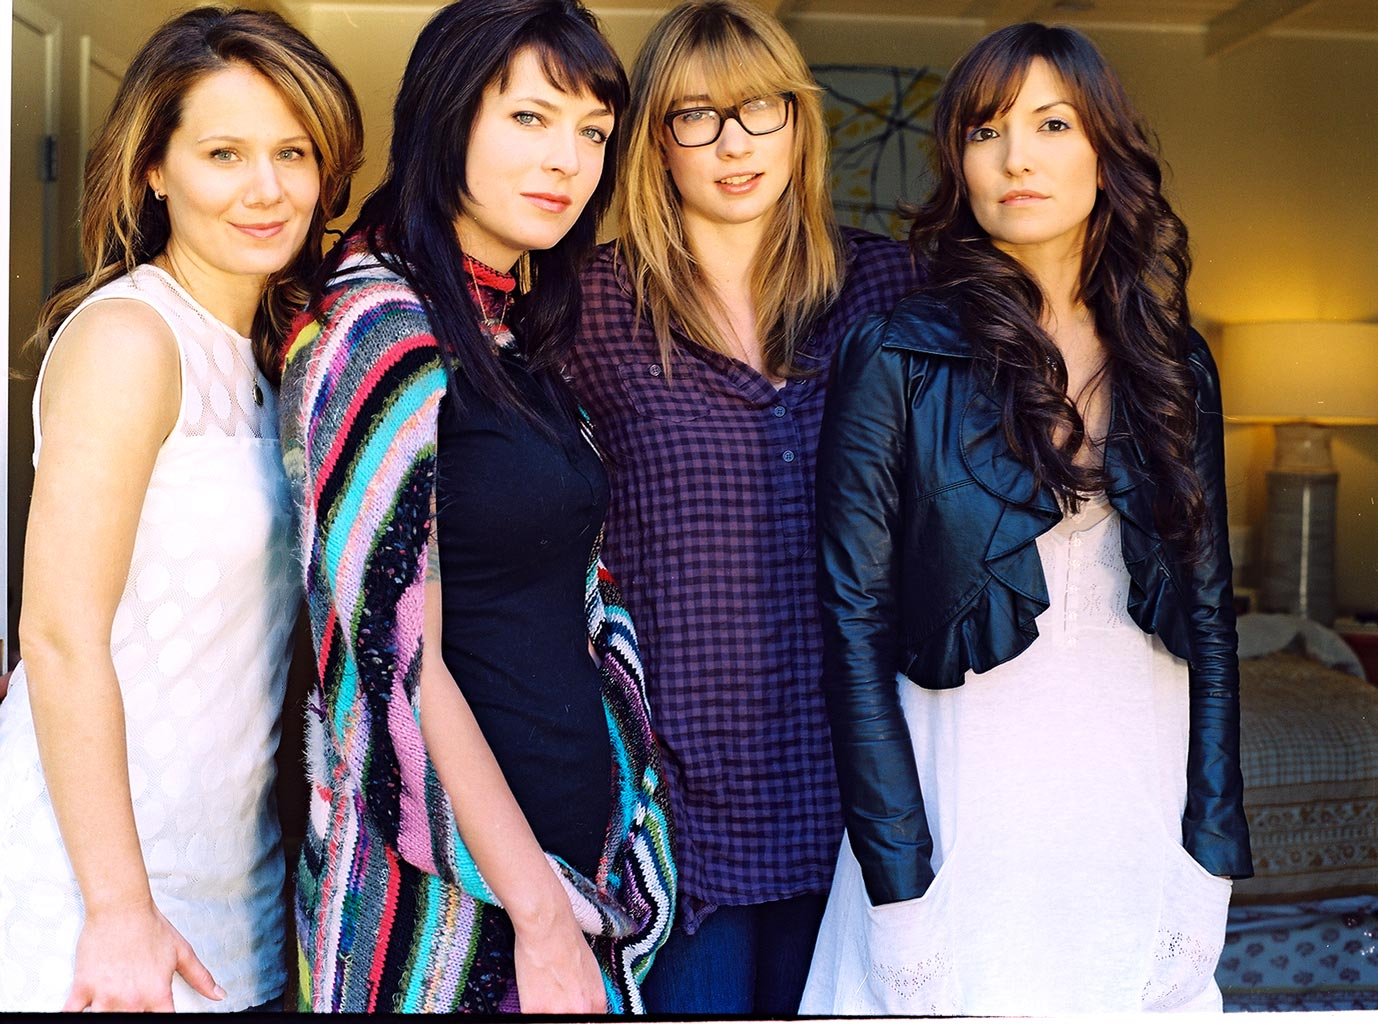 Dana Fox, Diablo Cody, Liz Meriwether, Lorene Scafaria for The New York Times